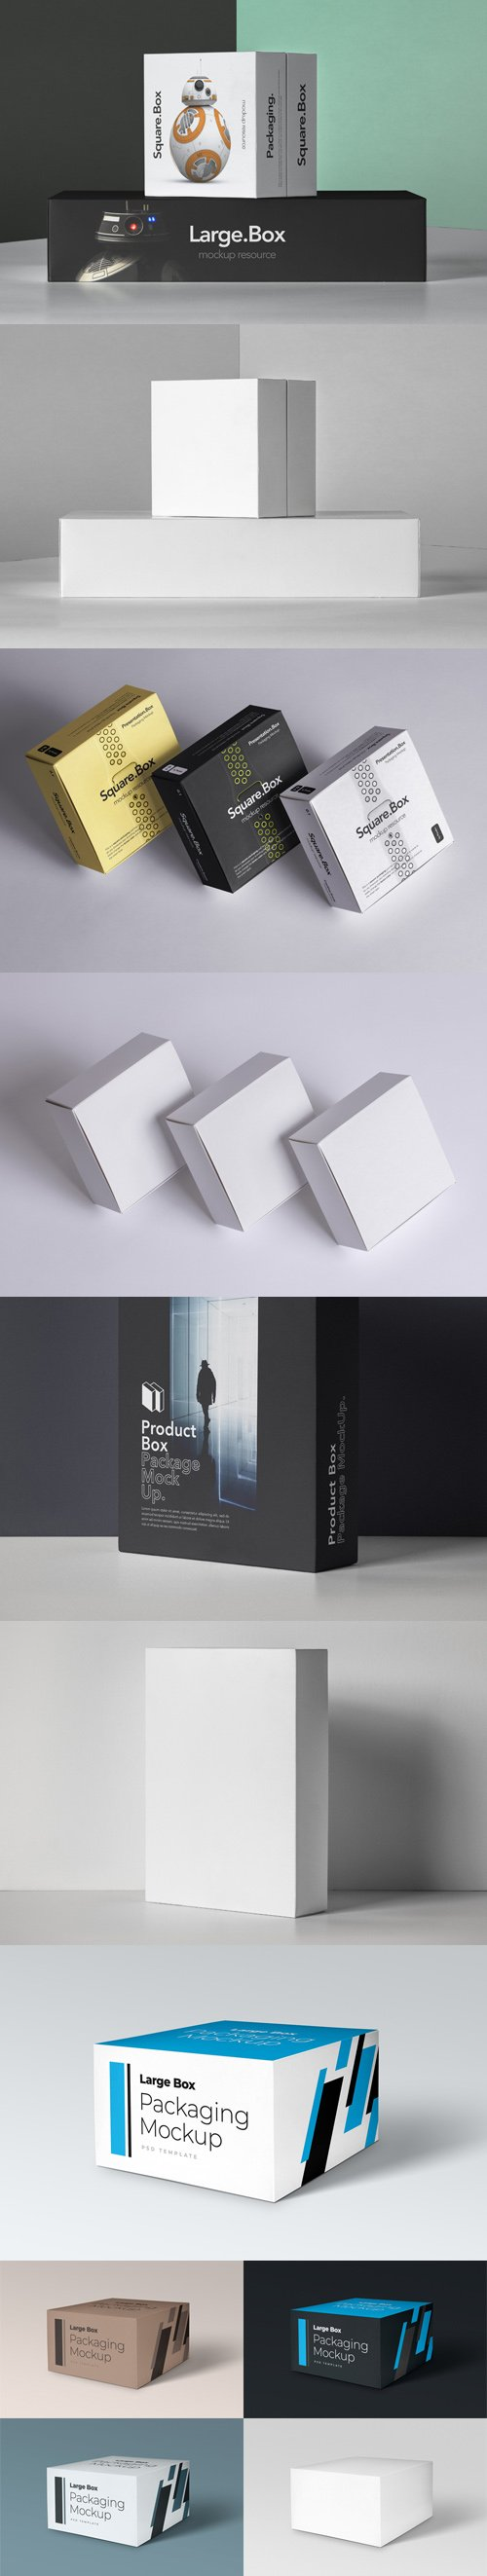 4 Product Boxes Packaging PSD Mockups Collection